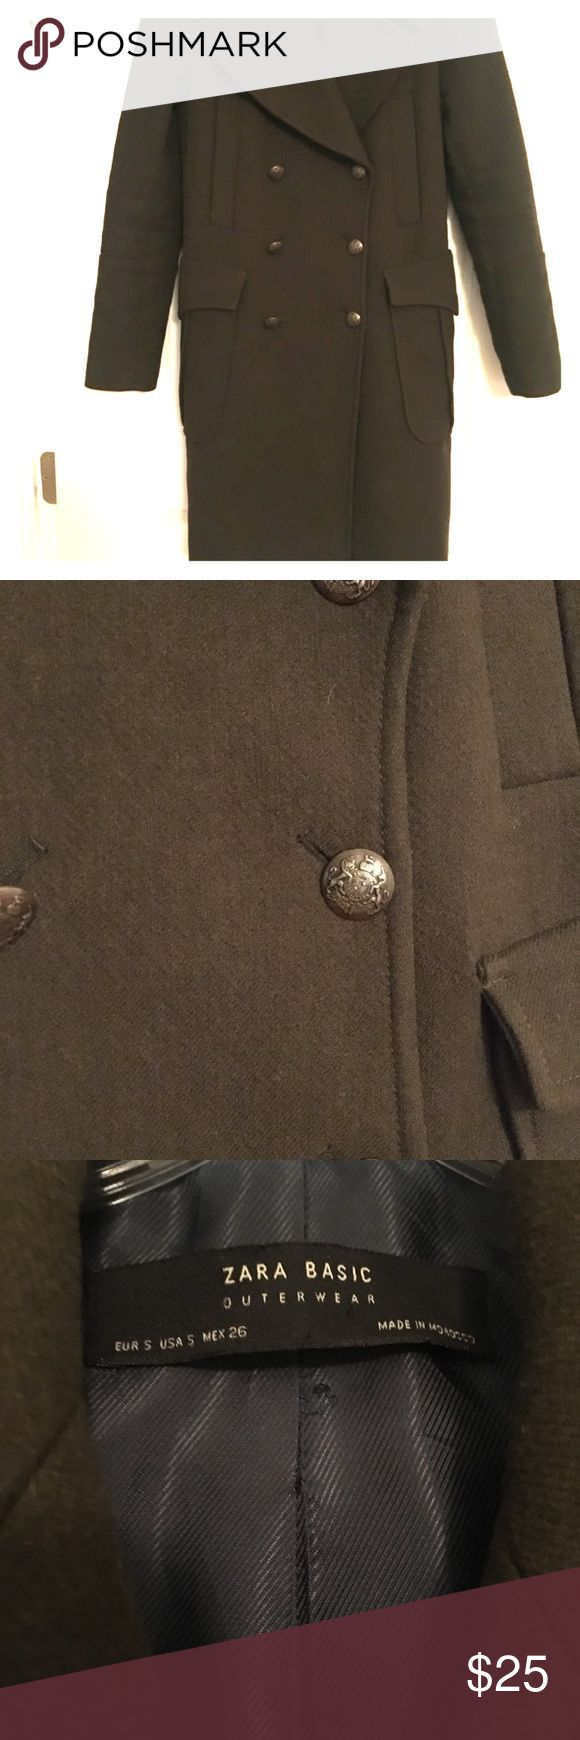 ZARA Brand Olive Green Wool Coat This cozy olive green wool winter gem is a lovely addition to your closet. The lining is navy blue with a large collar and detailed military style buttons. Zara Jackets & Coats Pea Coats